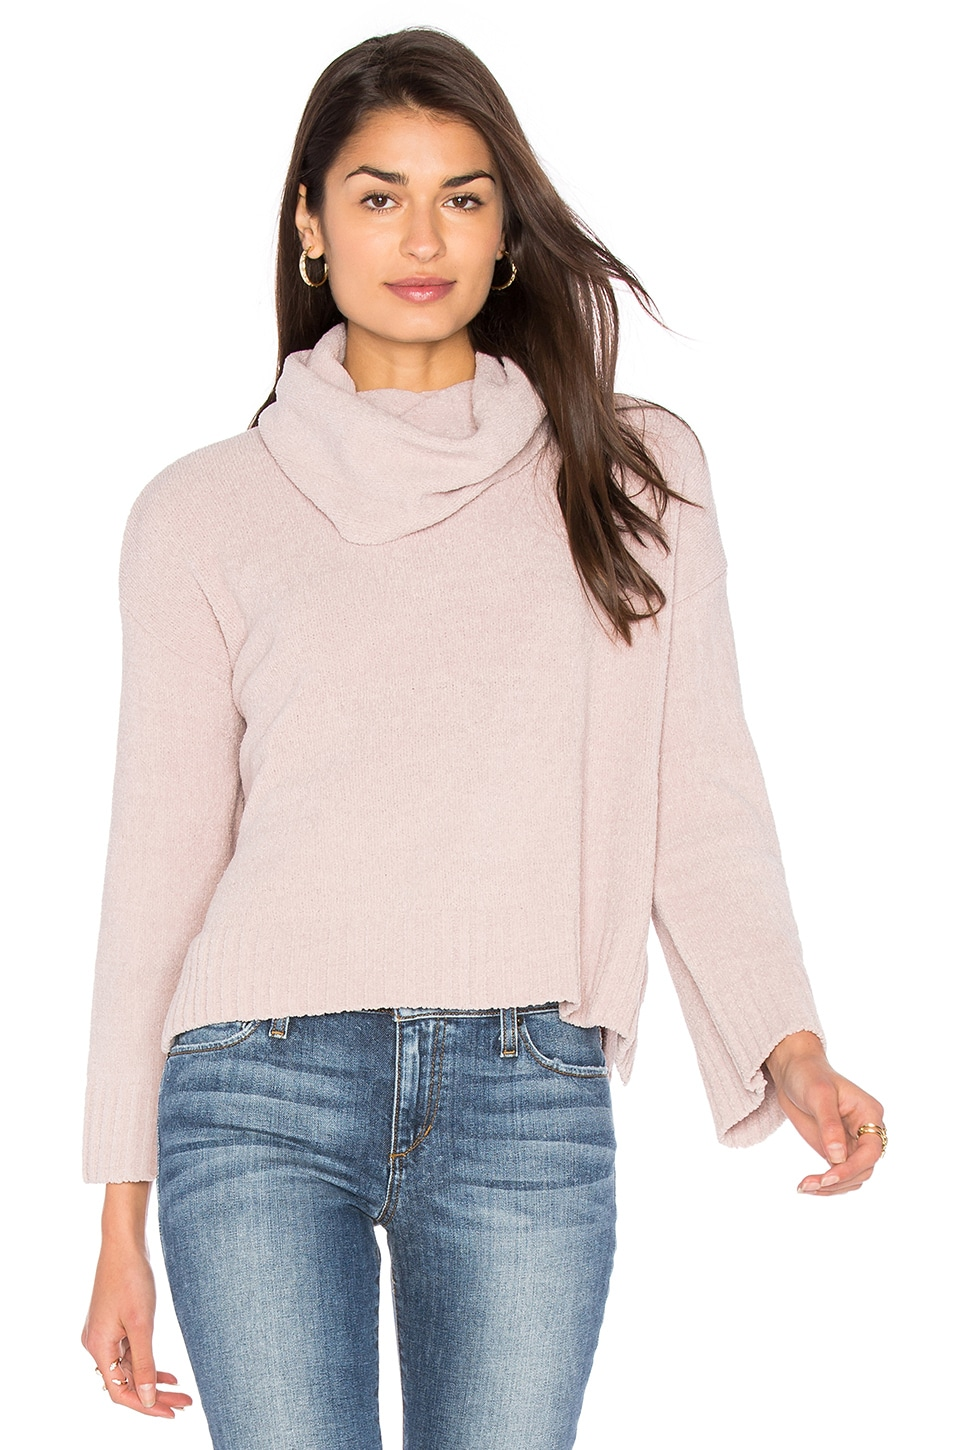 BB Dakota Marcilly Sweater in Champagne